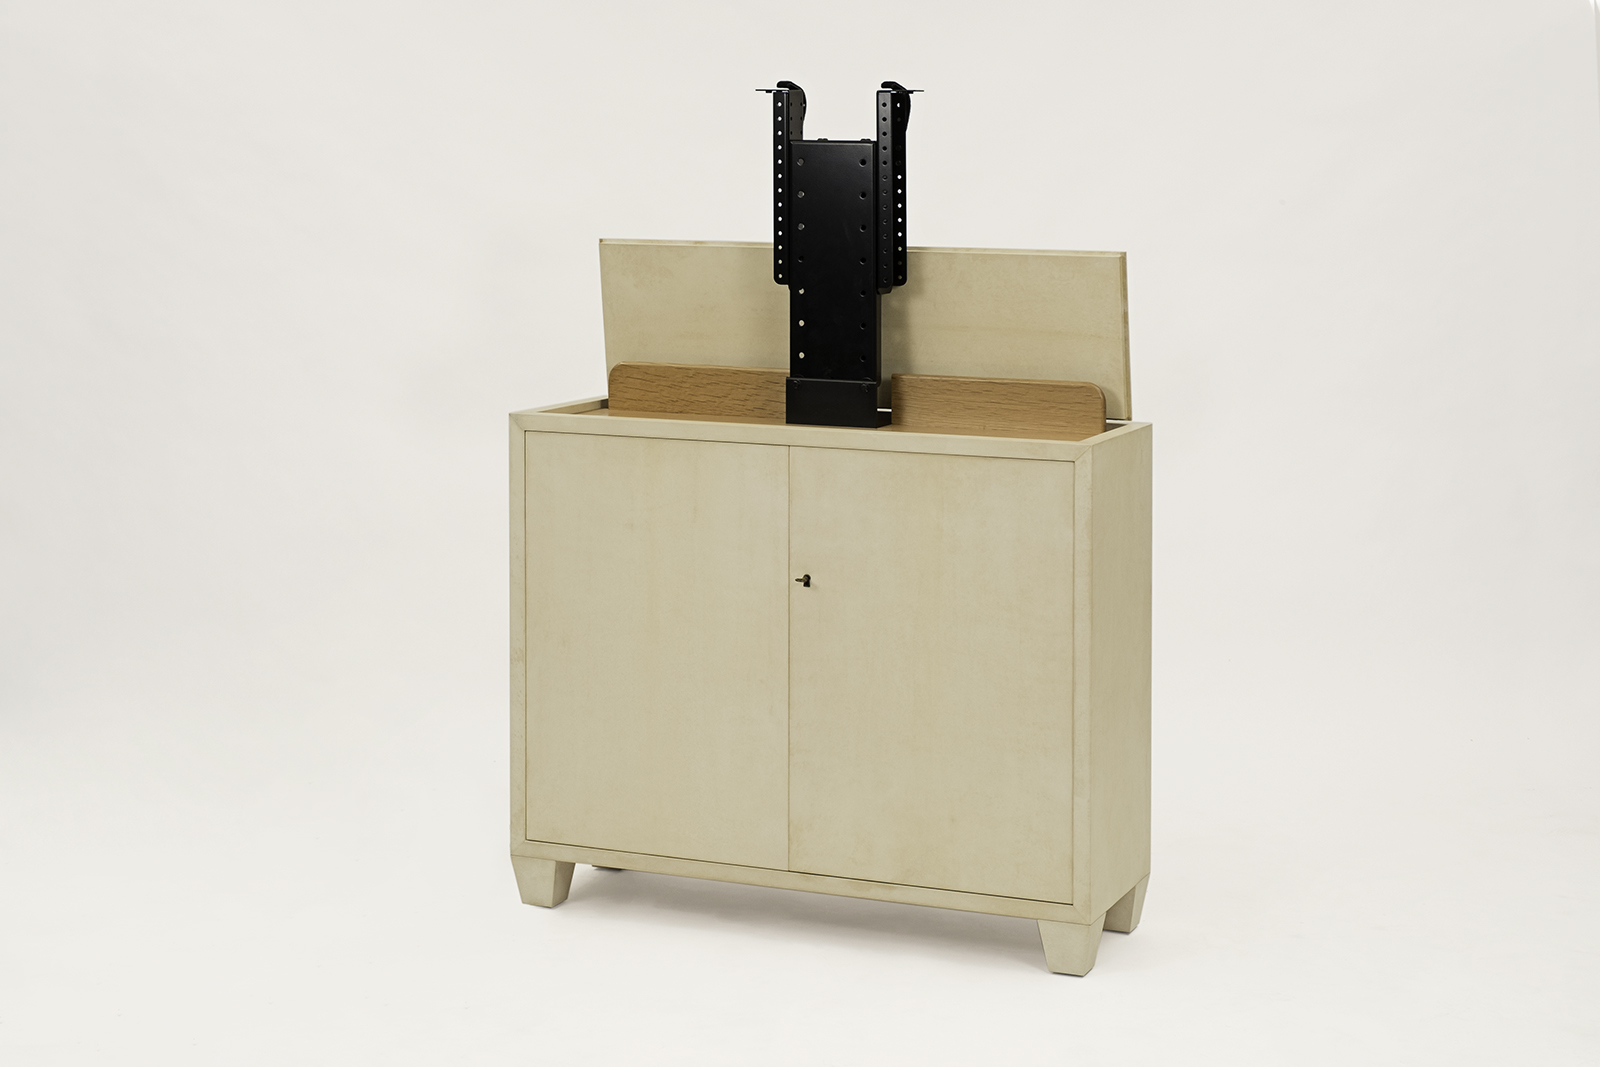 J.m. Frank Inspired Tv Lift Cabinet In Goat Skin Parchment